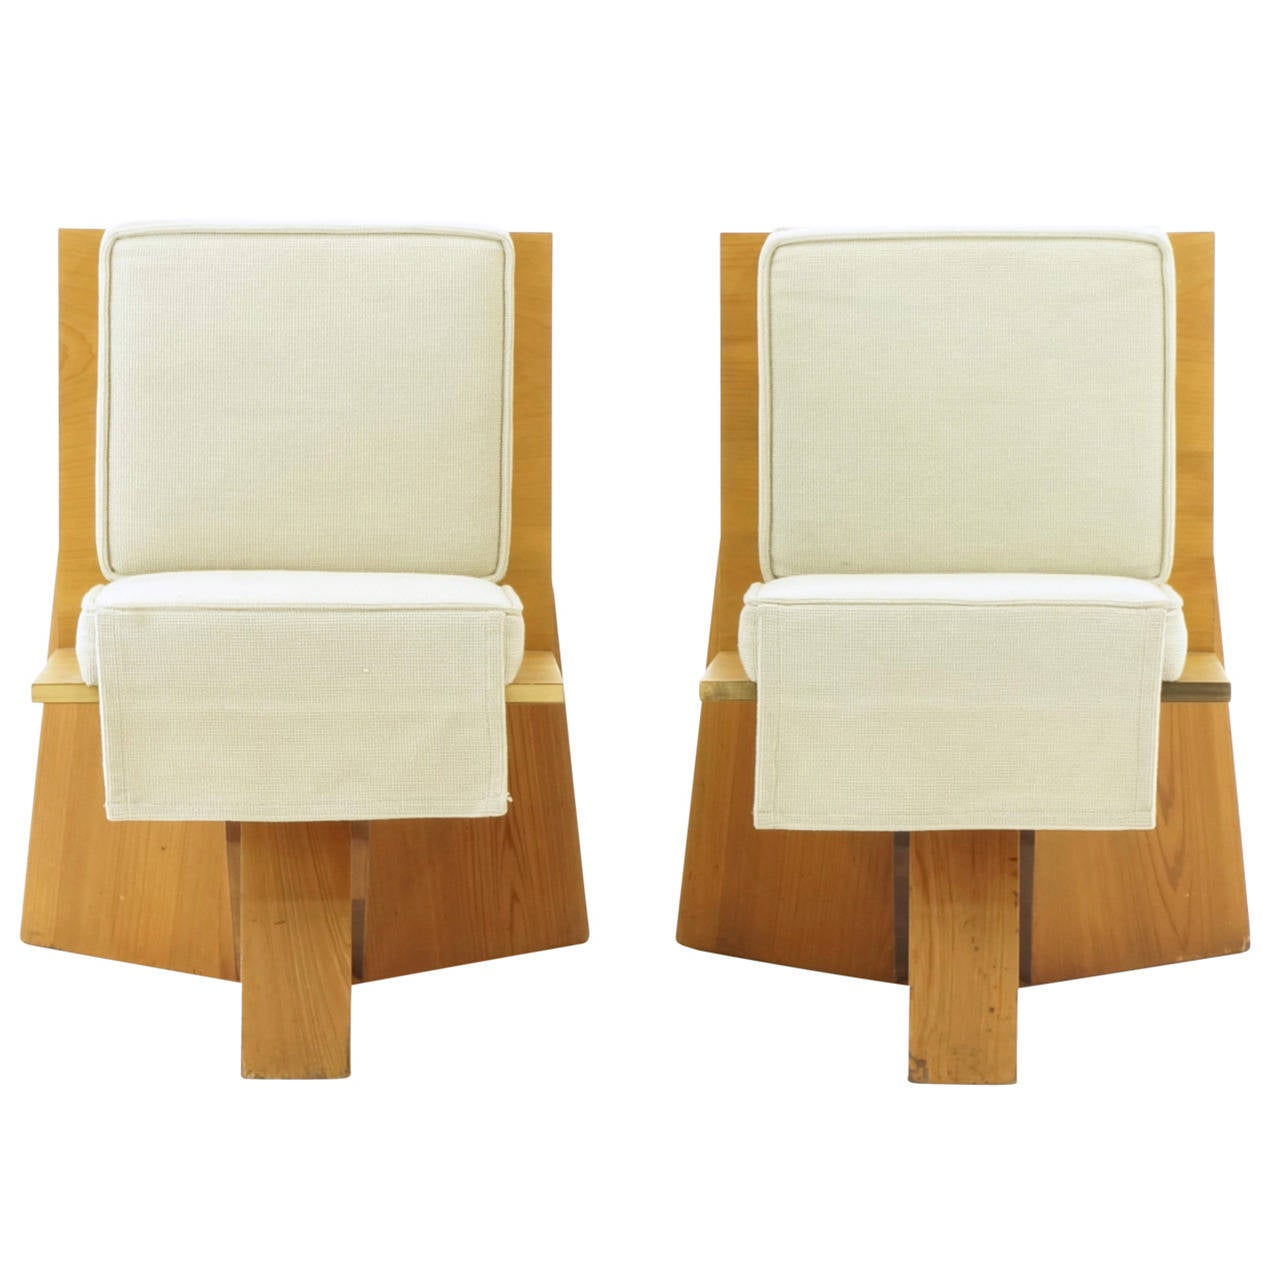 Frank Lloyd Wright Chairs Pair Of Frank Lloyd Wright Chairs From The Sondern House